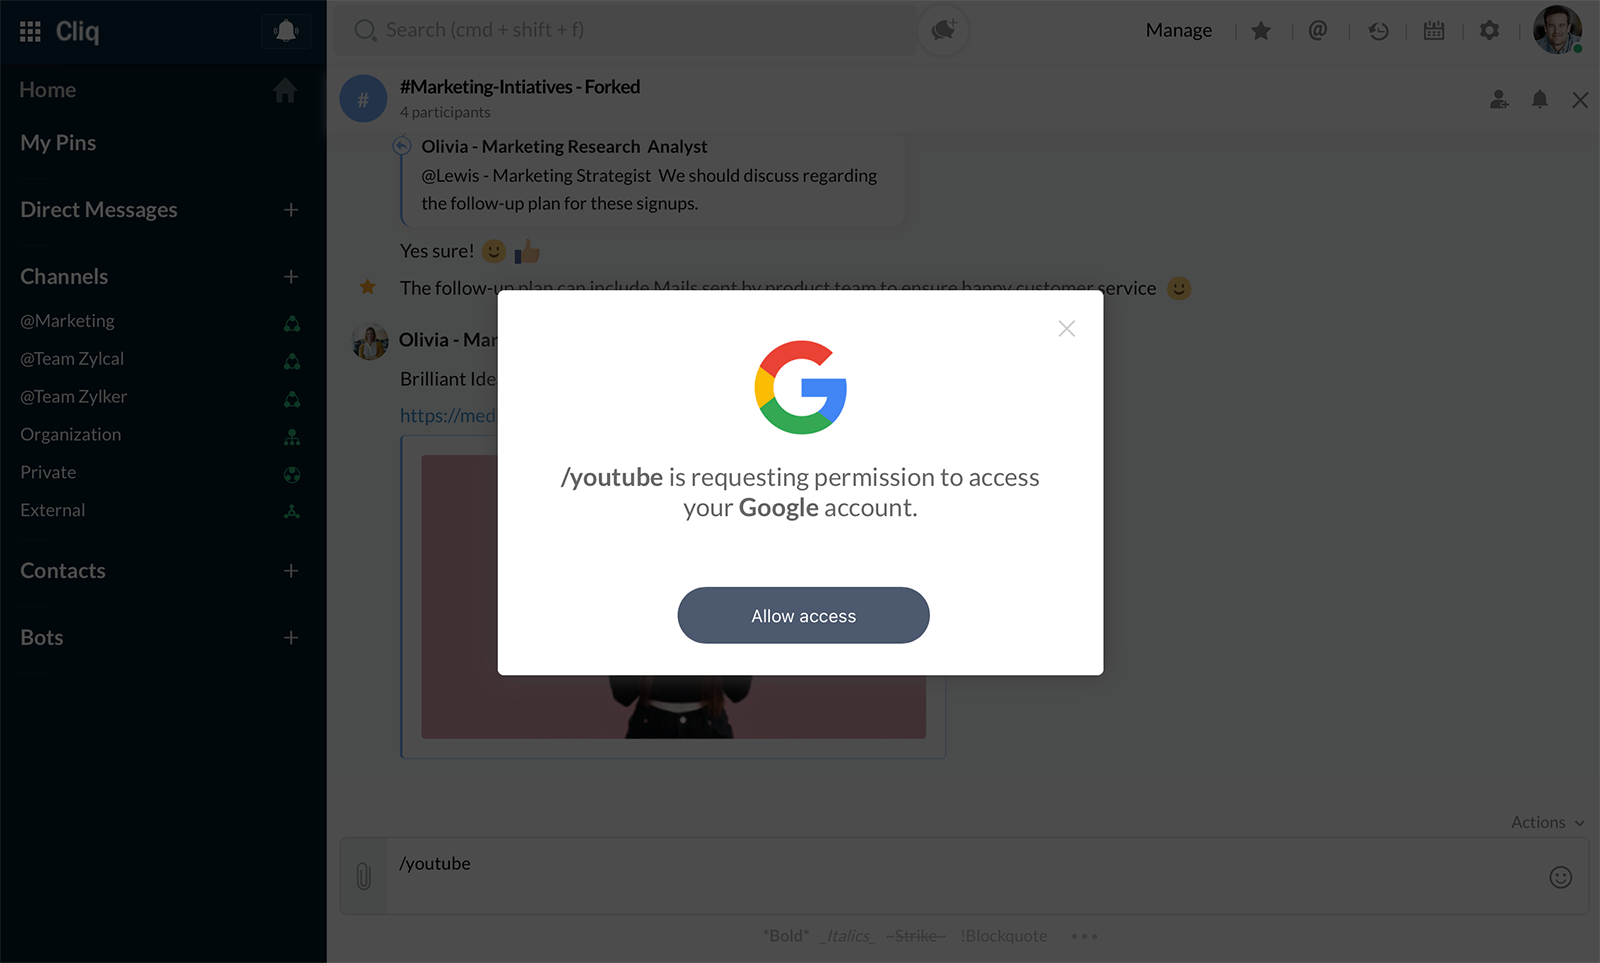 The very first time, YouTube will ask permission to access your Google account